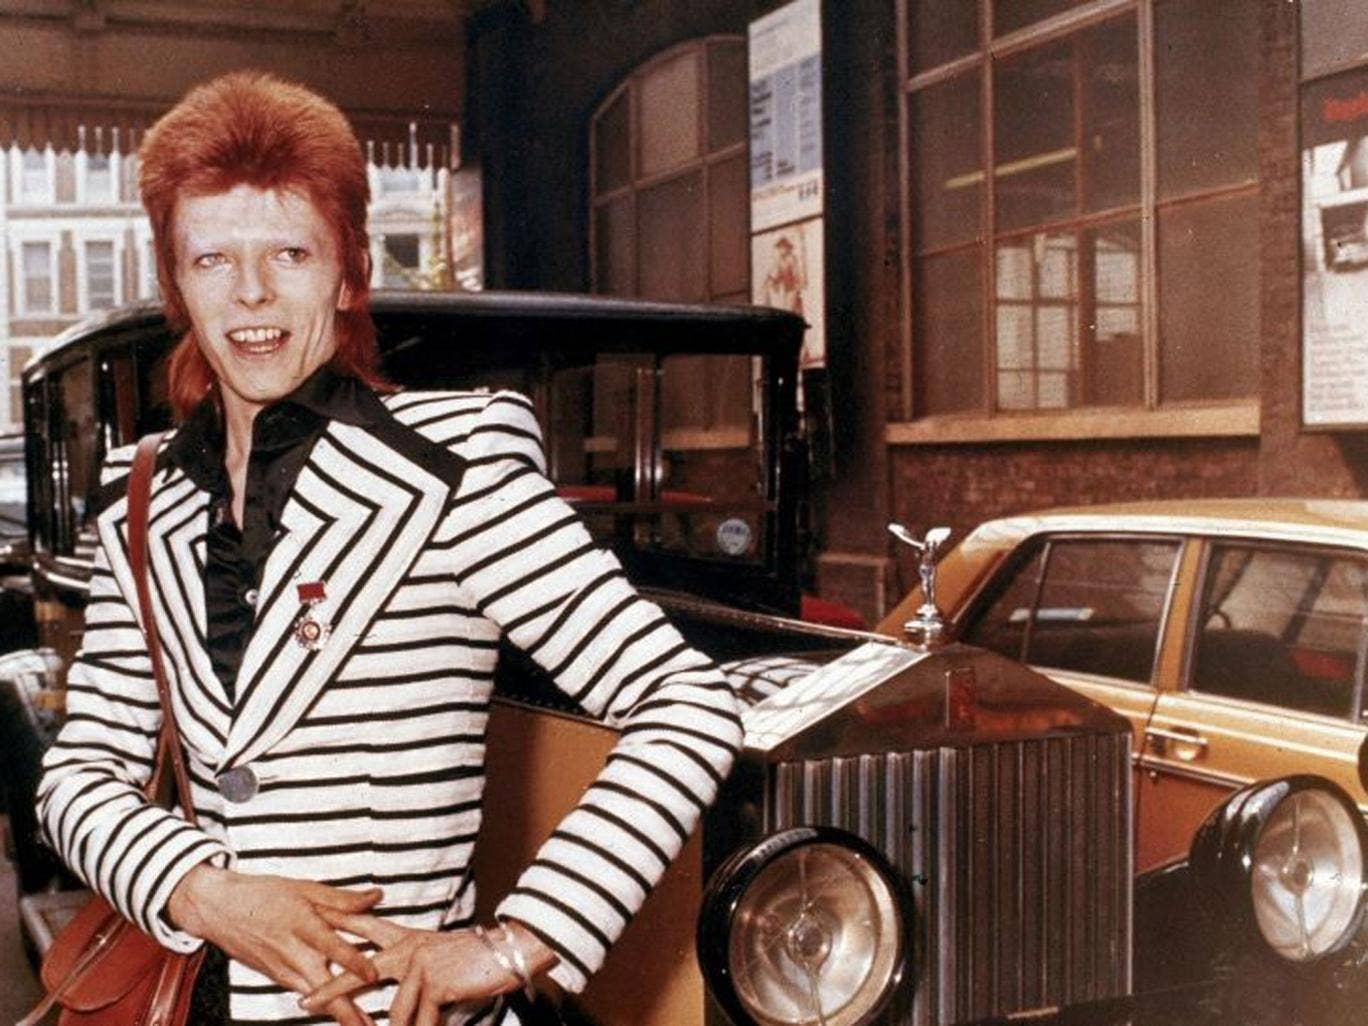 David Bowie has been a virtuoso of fame since the early Seventies